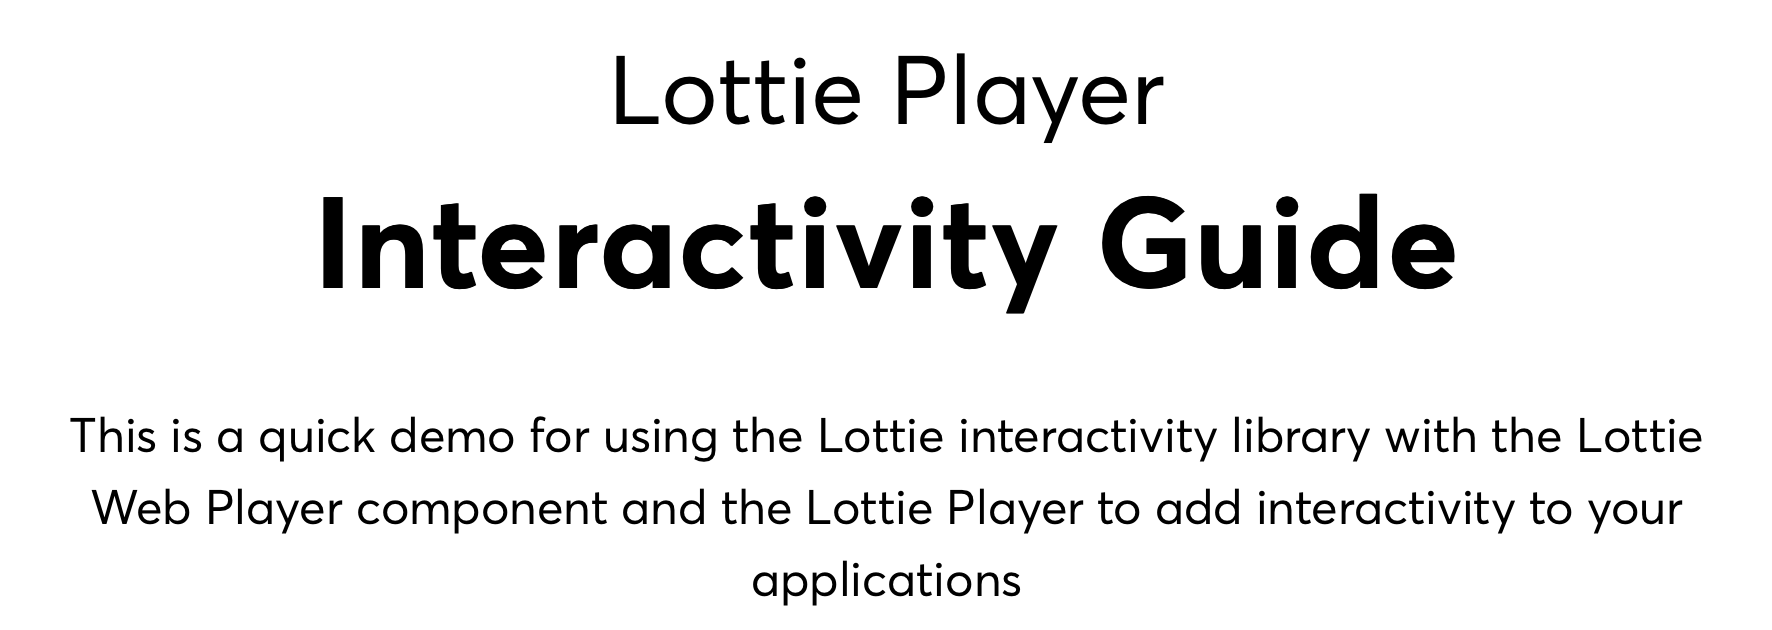 Lottie Player Interactivity Guide